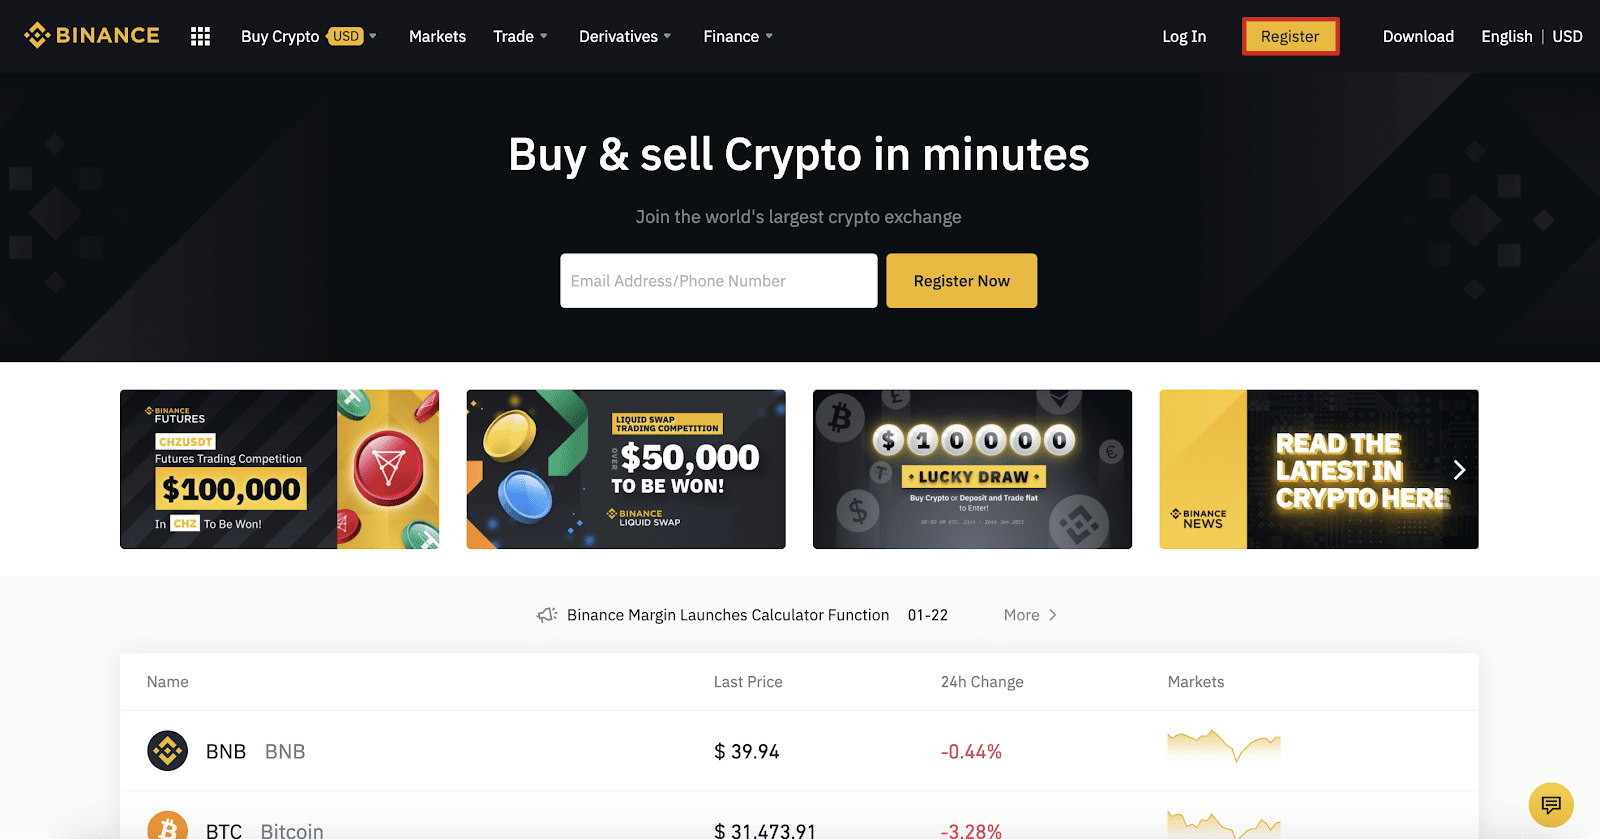 How to Sign Up and Deposit at Binance